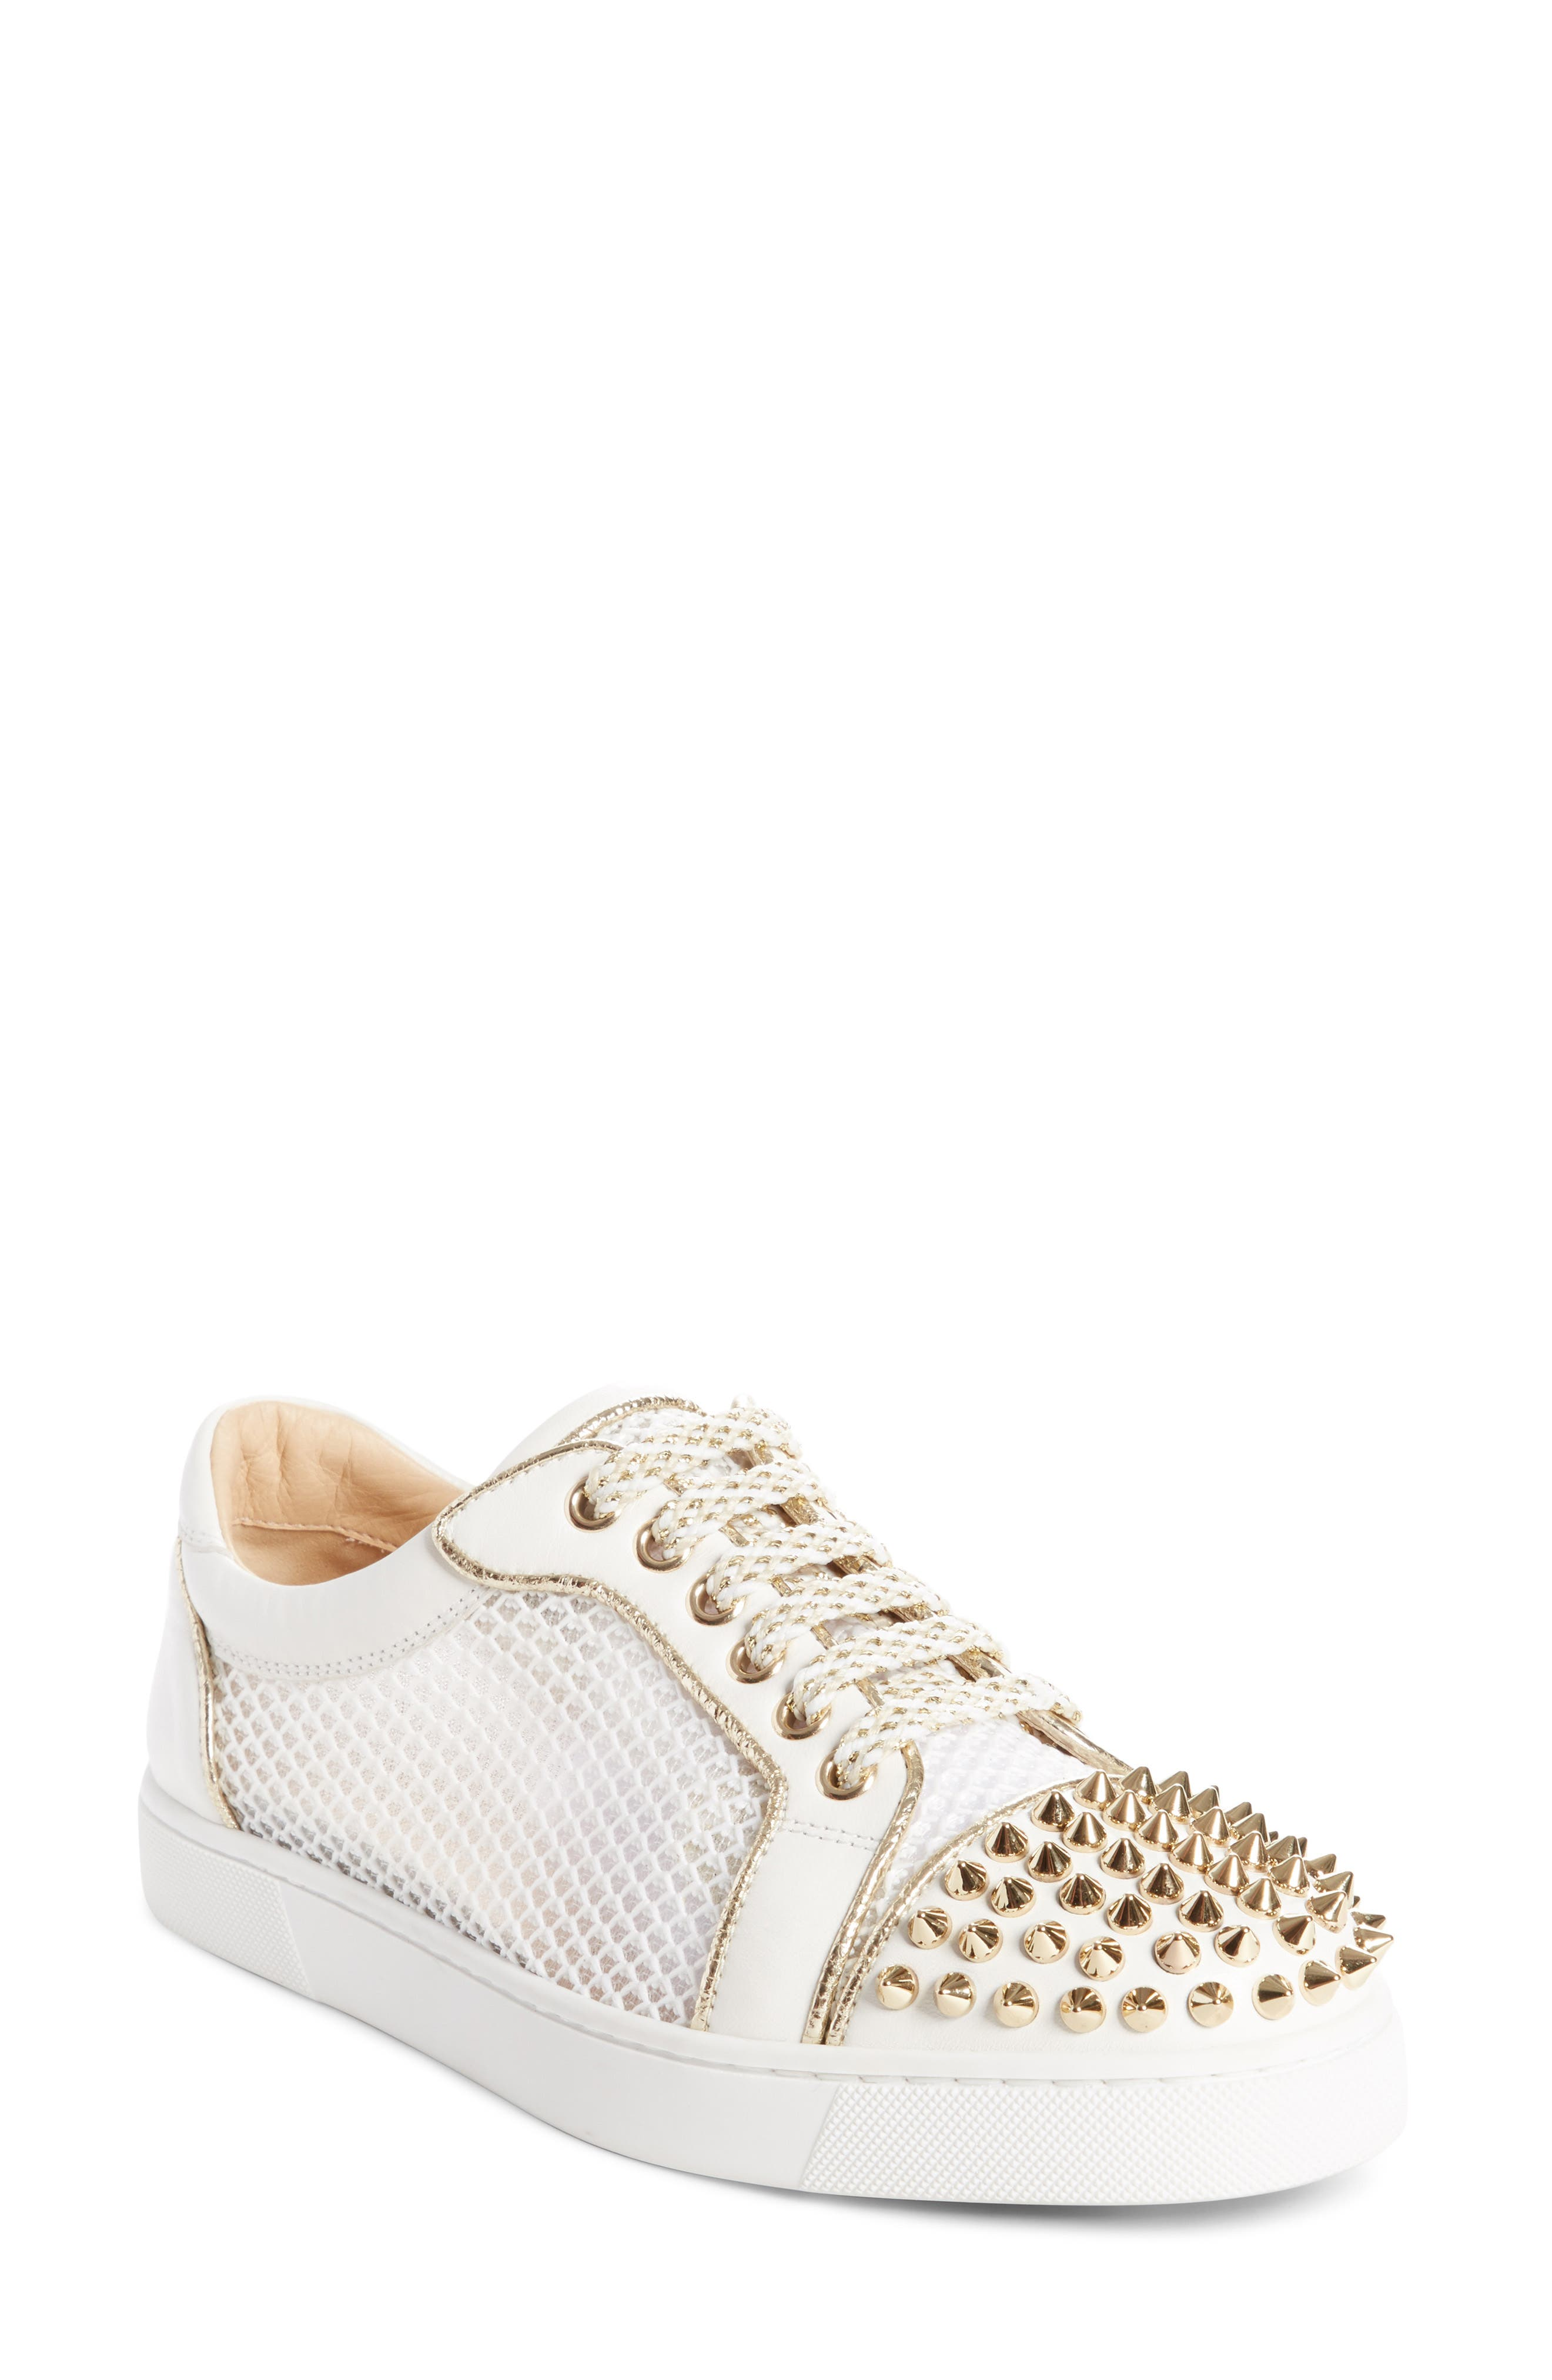 Vieira Spiked Low Top Sneaker,                             Main thumbnail 1, color,                             Latte/ Light Gold